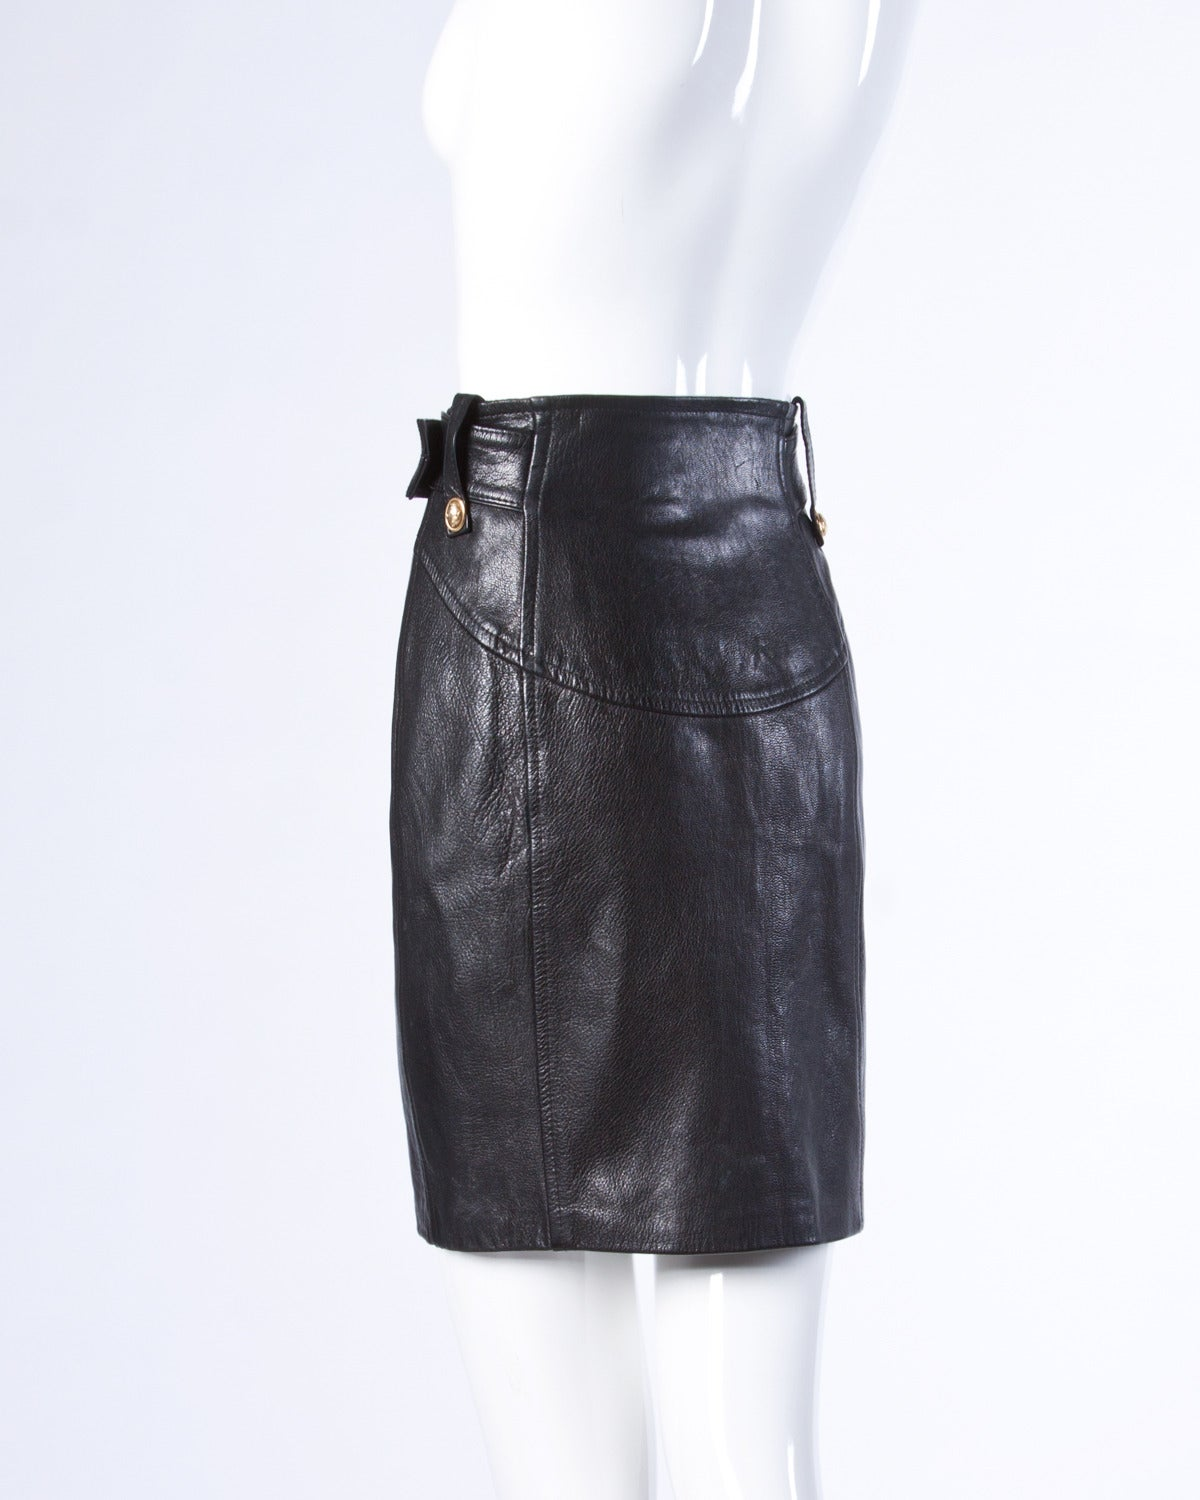 Moschino Vintage 1990s 90s Black Leather Skirt with Heart Belt Buckle 3